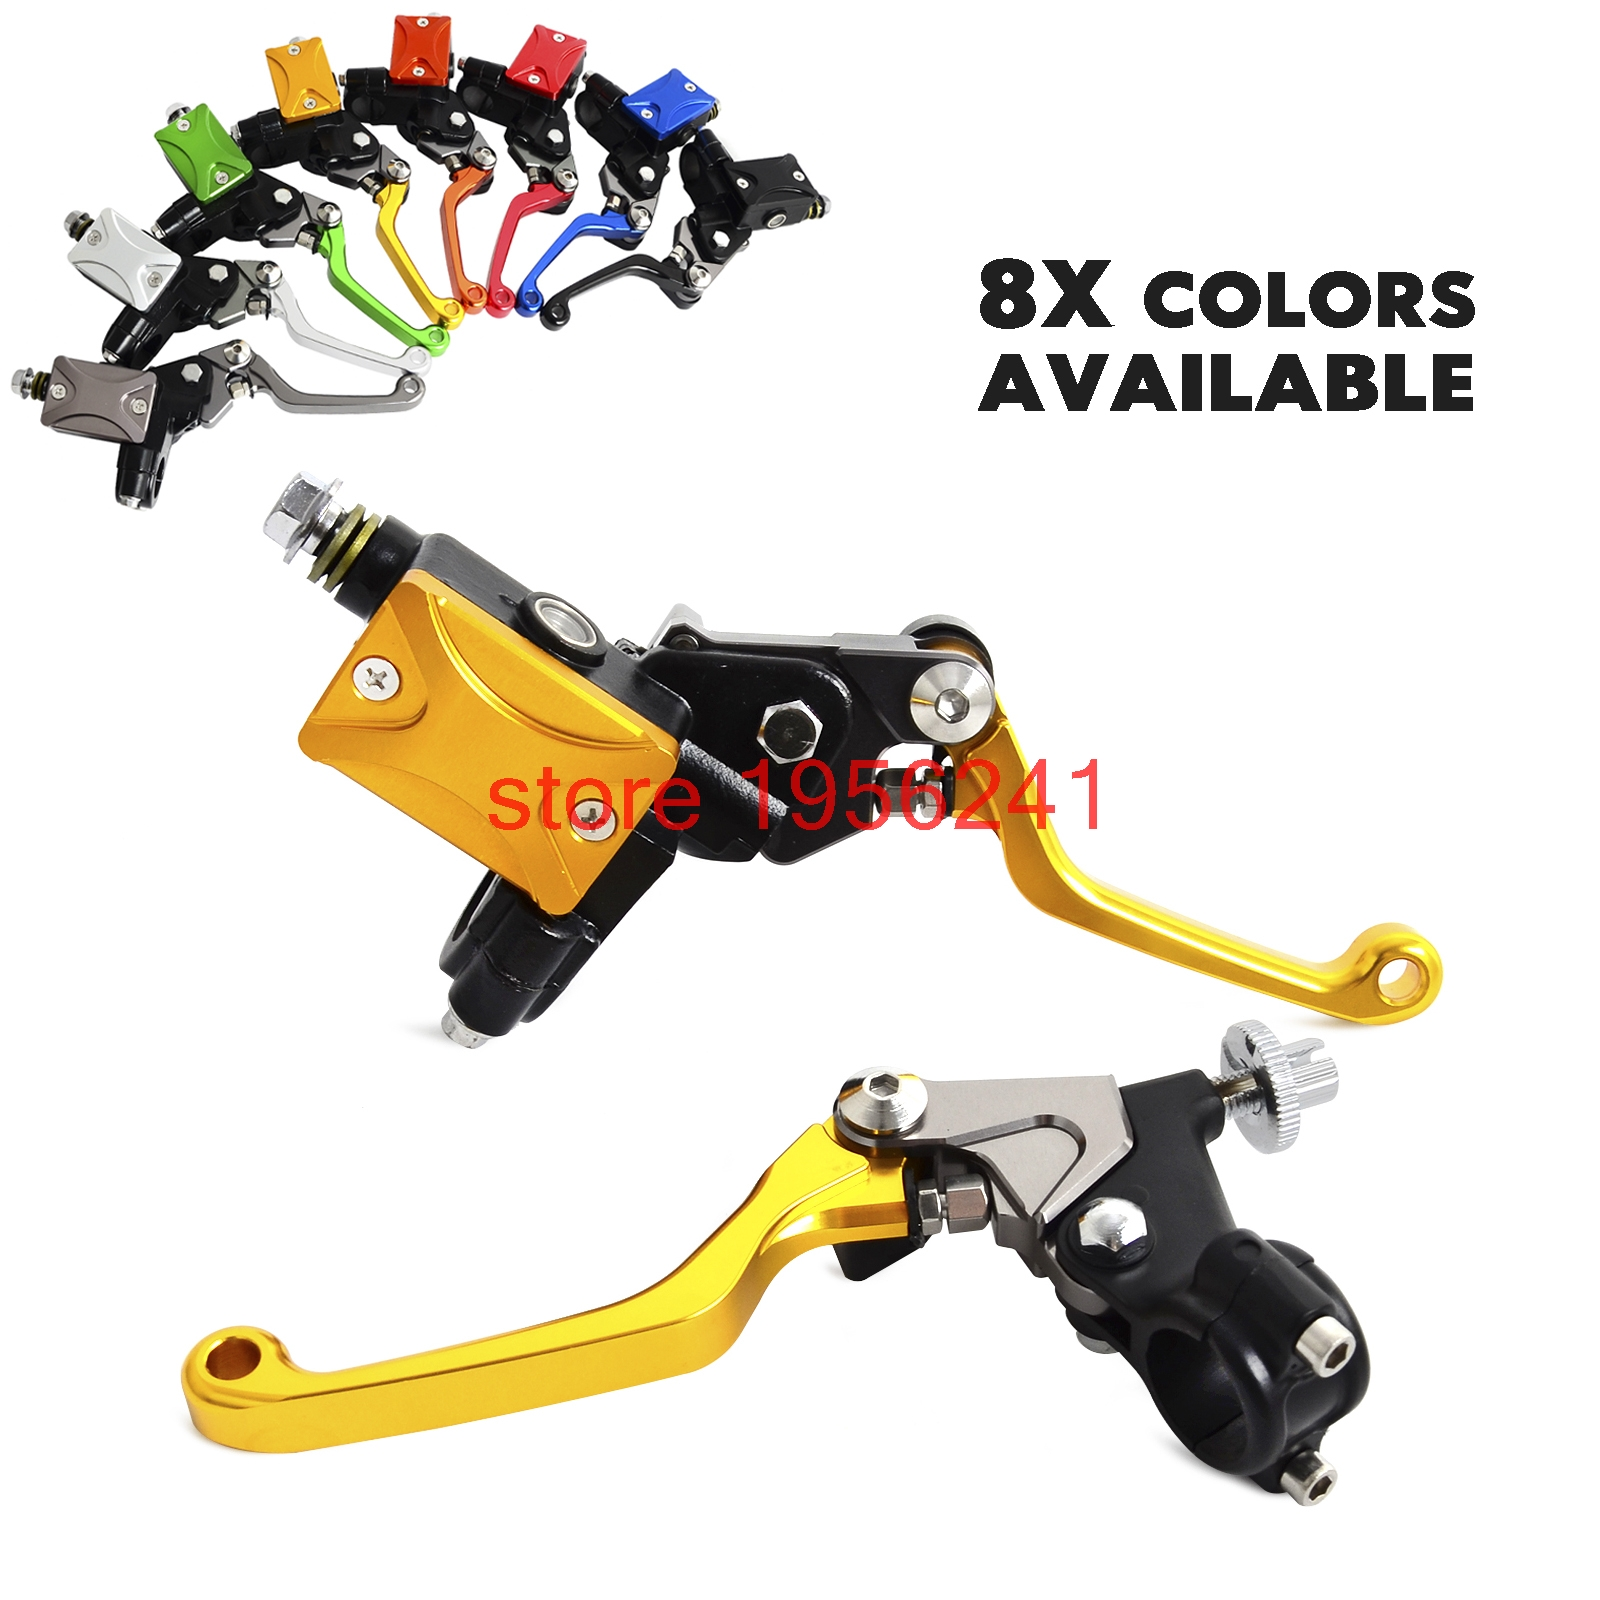 H2CNC Hydraulic Brake Cable Clutch Lever Set Assembly For Yamaha YZ80 YZ85 YZ125 YZ250 YZ250F YZ426F